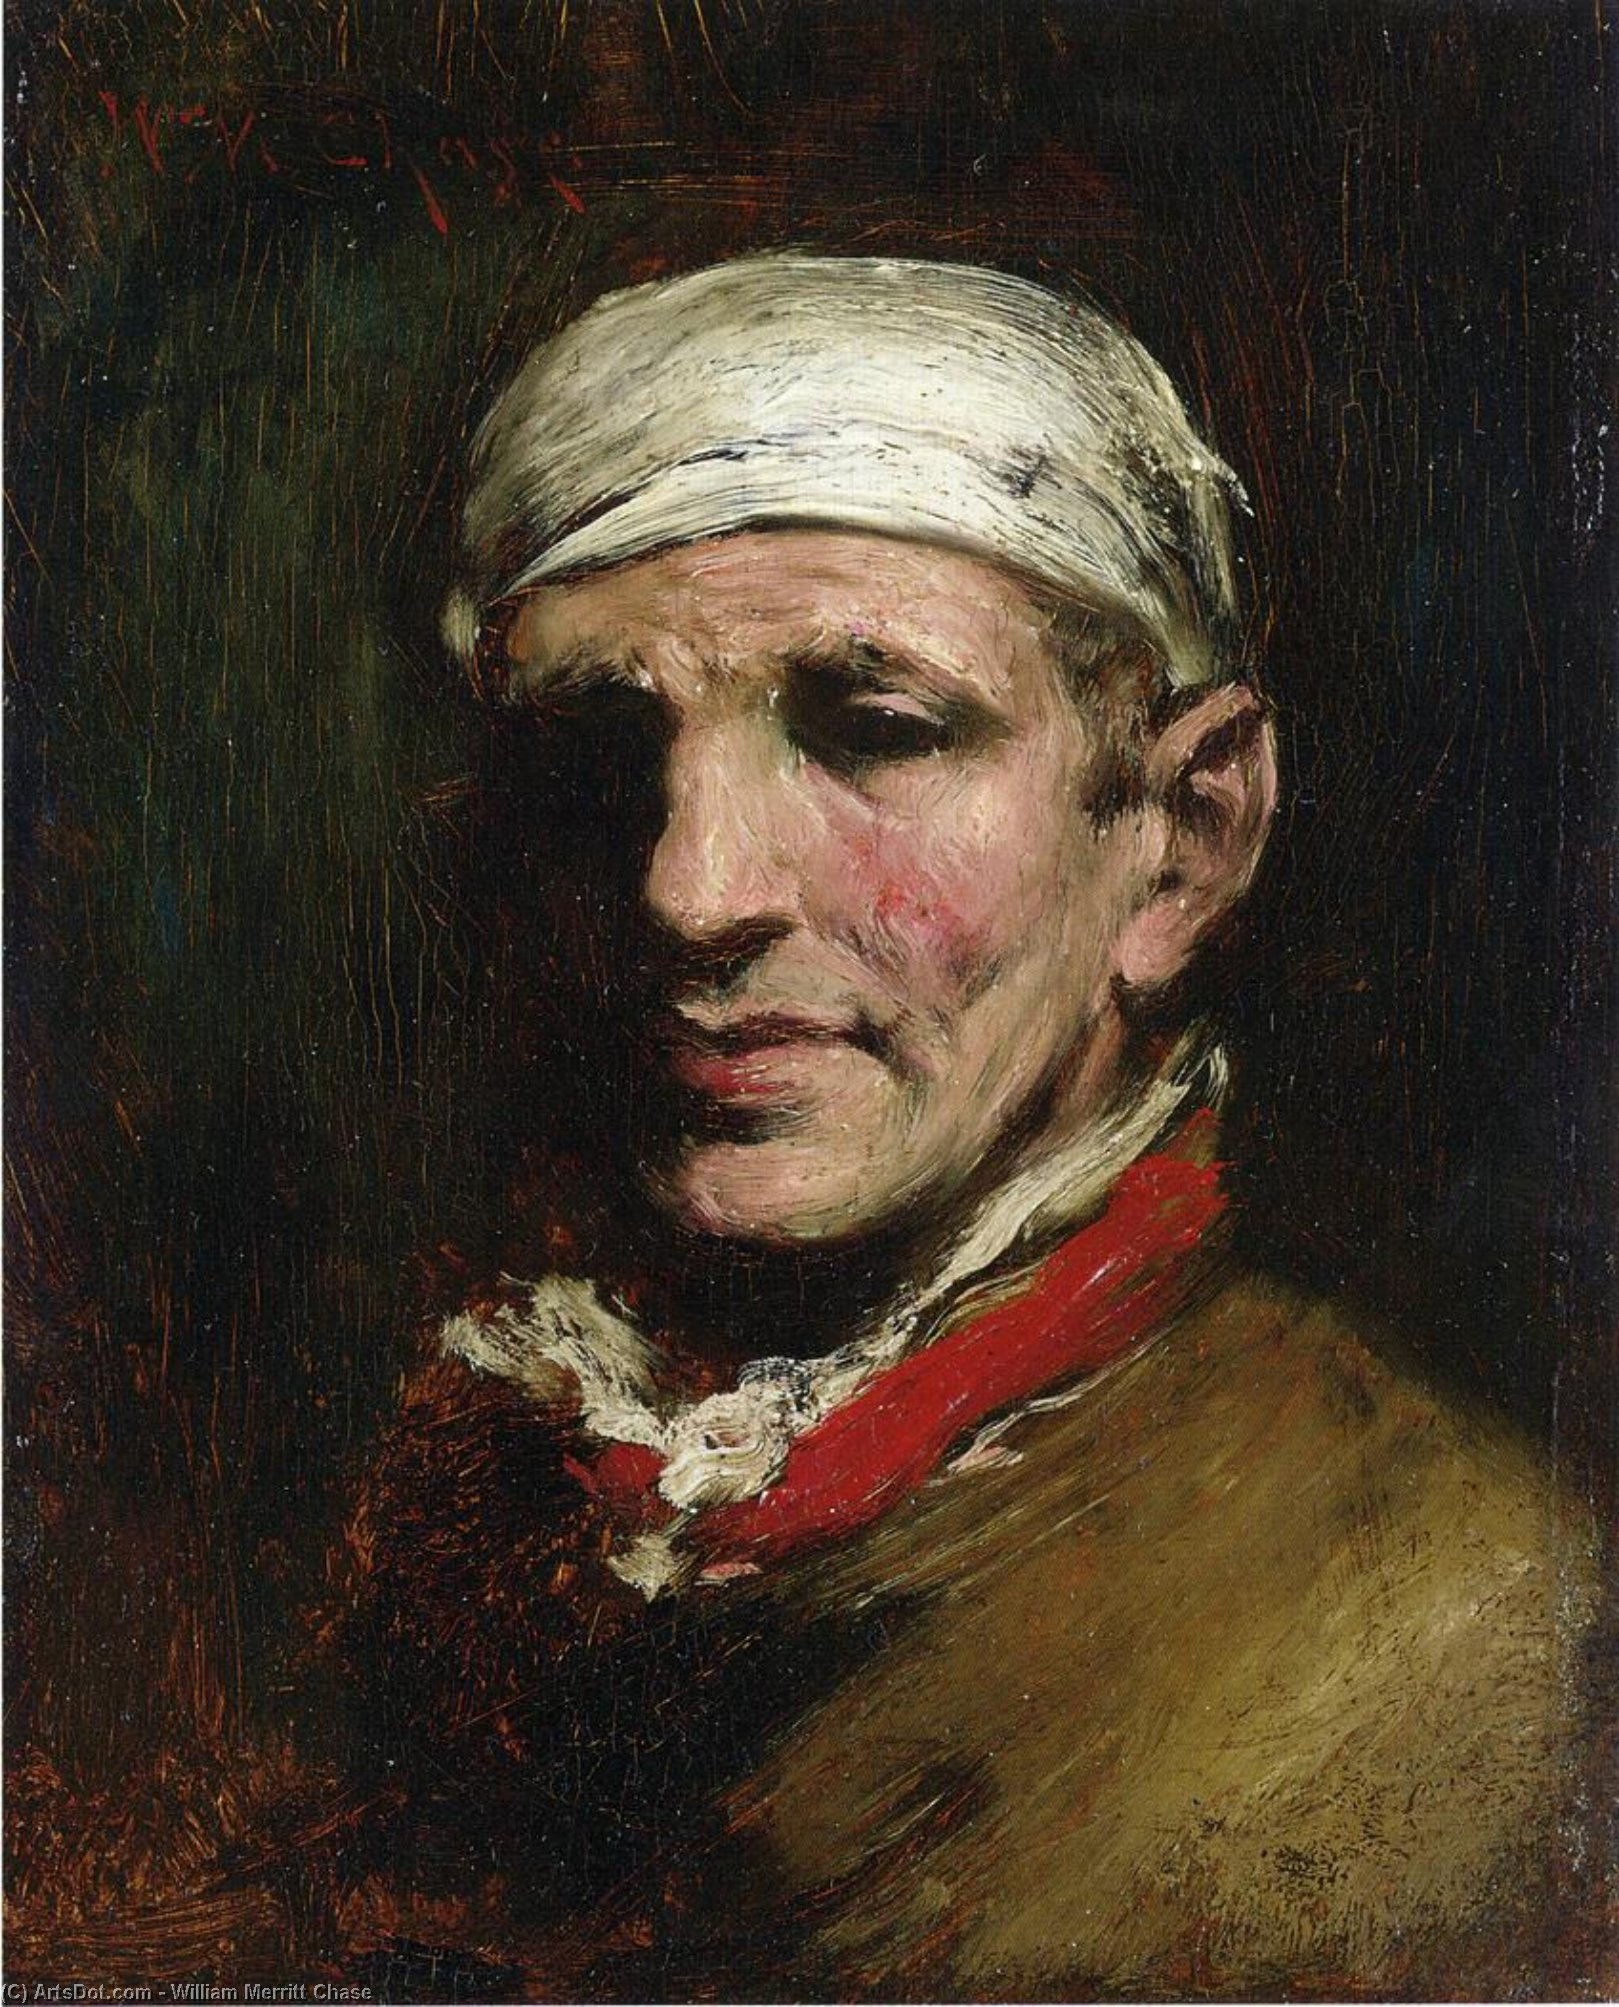 Man with Bandana, Oil On Panel by William Merritt Chase (1849-1916, United States)